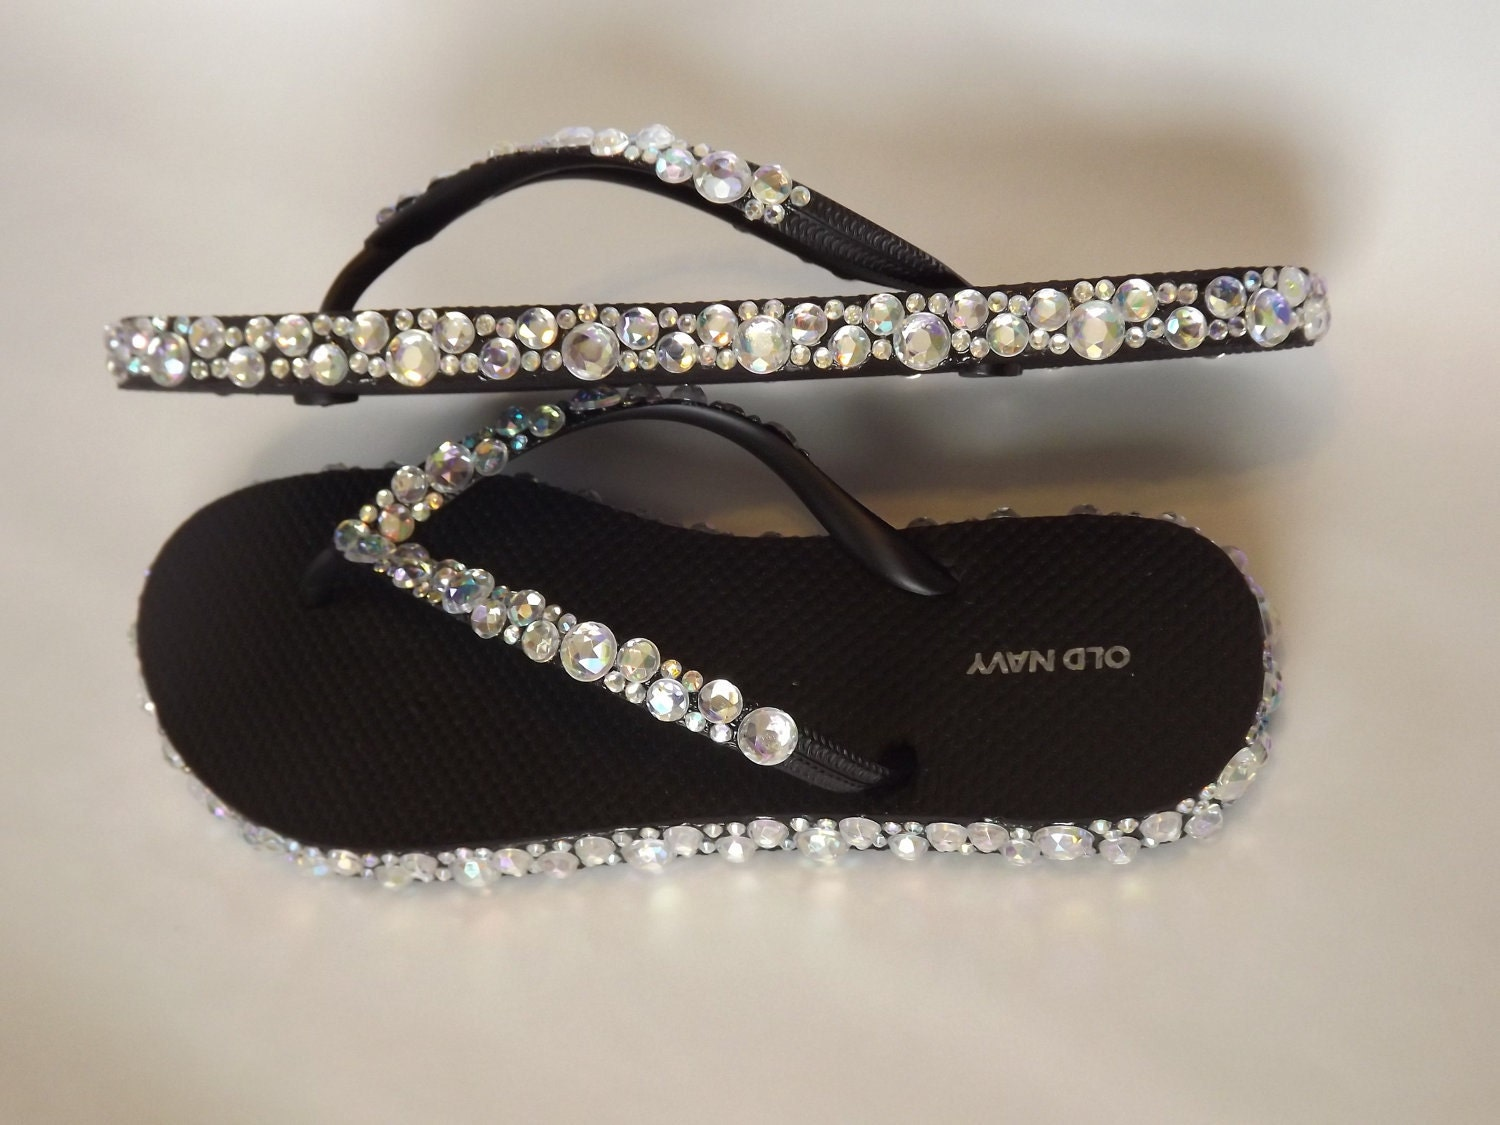 A stunning collection of white glitter flip flops for your wedding guests. White High Wedge Starfish Swarovski Flip Flops Womens Bridal Wedding Platform Heel Satin. by Bow Flip Flops. Dear Time Flip Flop Bling Rhinestones Summer Women Flat Thong Sandals. by Dear Time. $ - $ $ 11 $ 16 99 Prime. Some sizes/colors are Prime eligible.